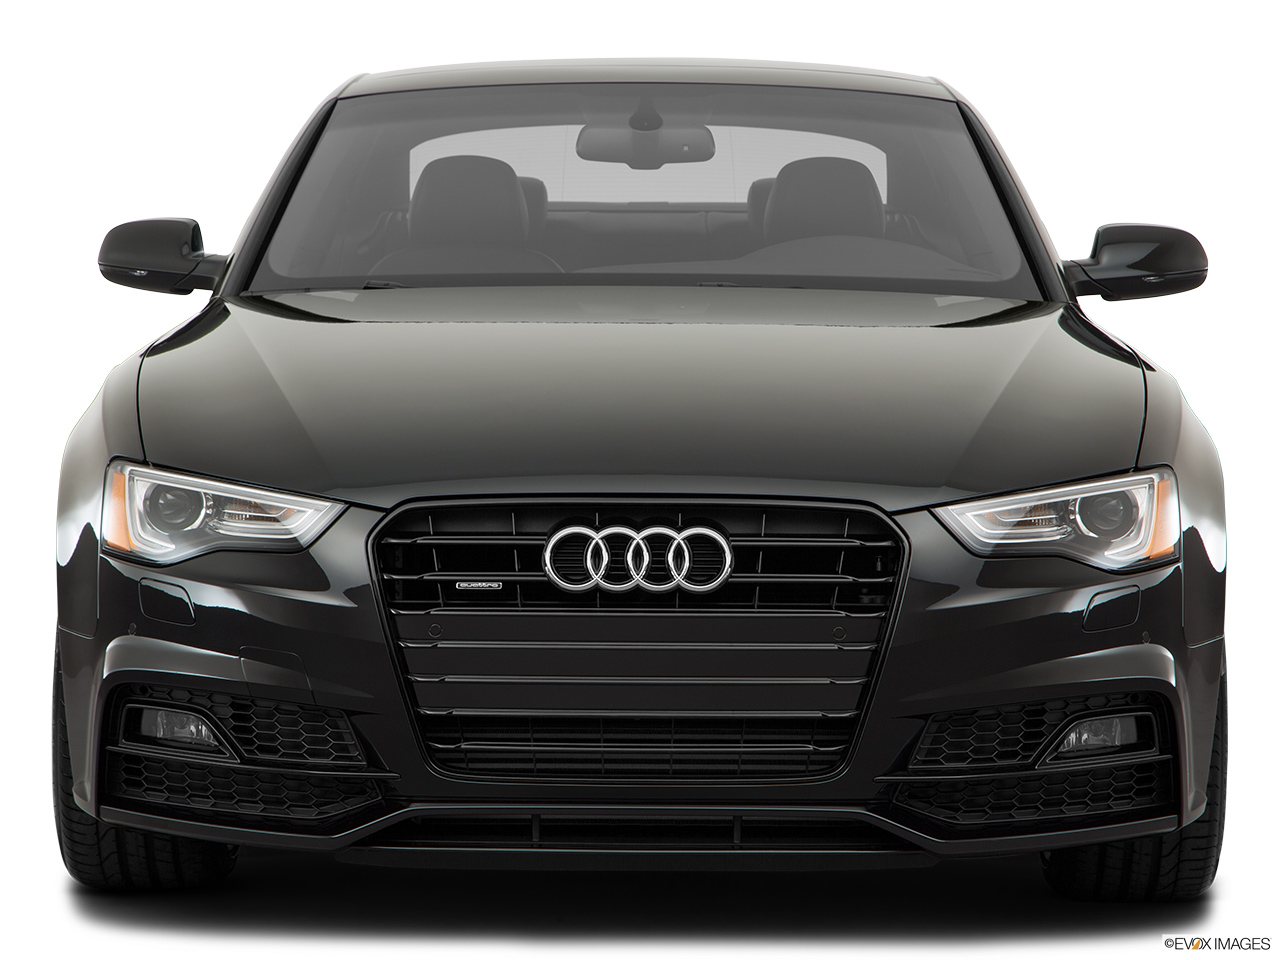 2017 Audi A5 Sport 2.0 TFSI Low/wide front.